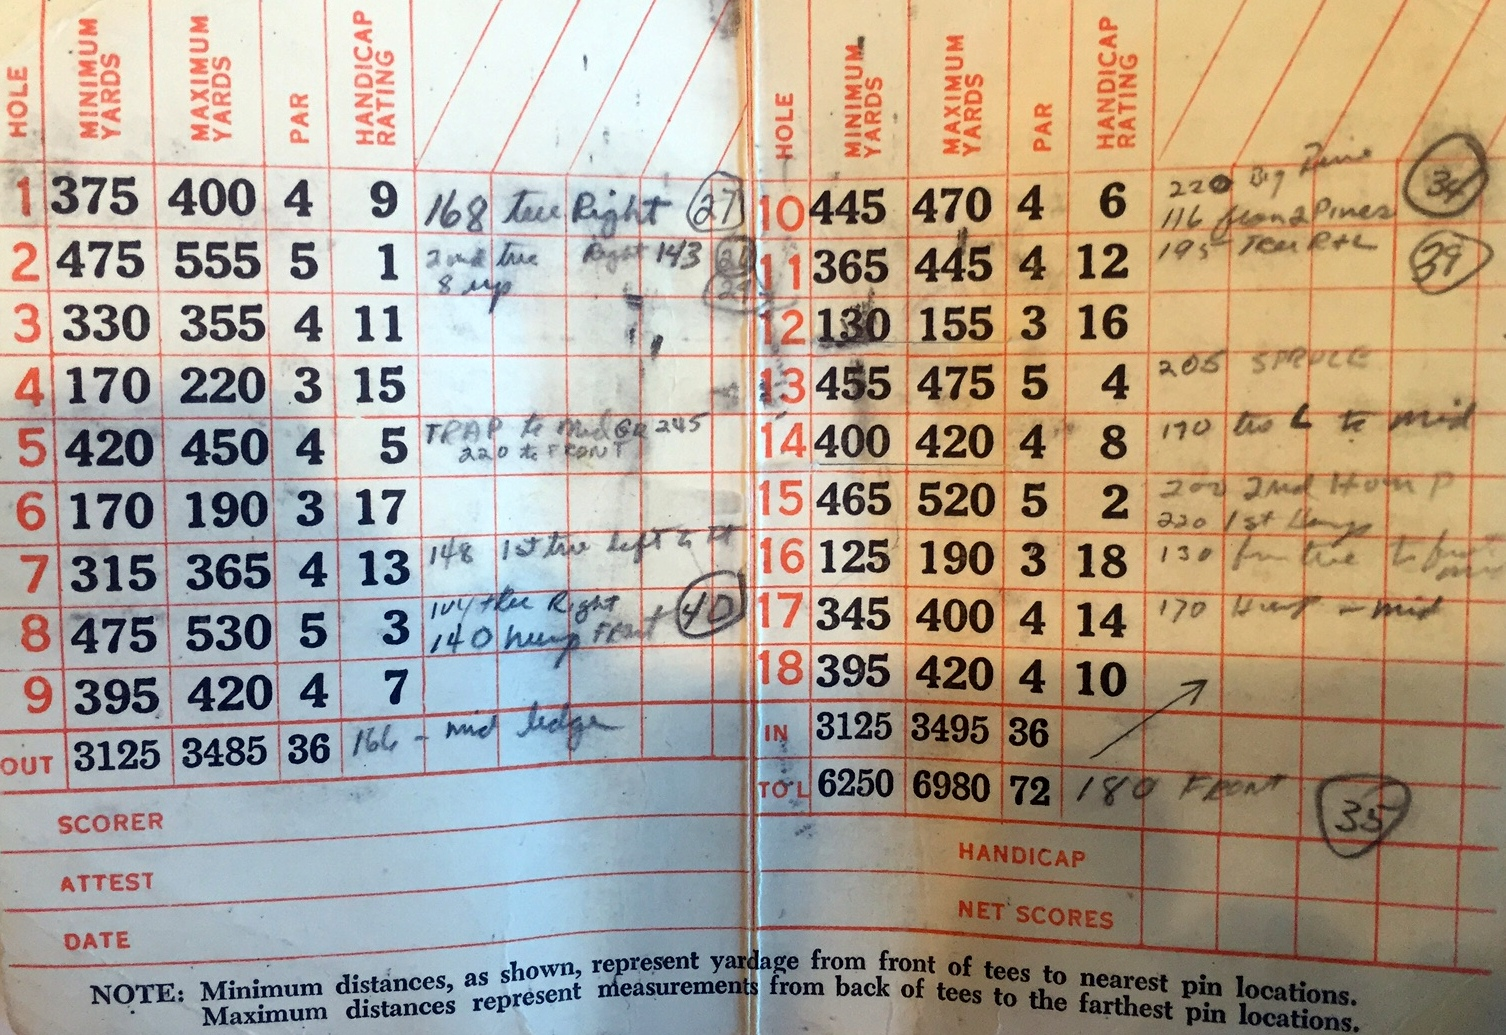 Beman's notes for the 1959 Masters.